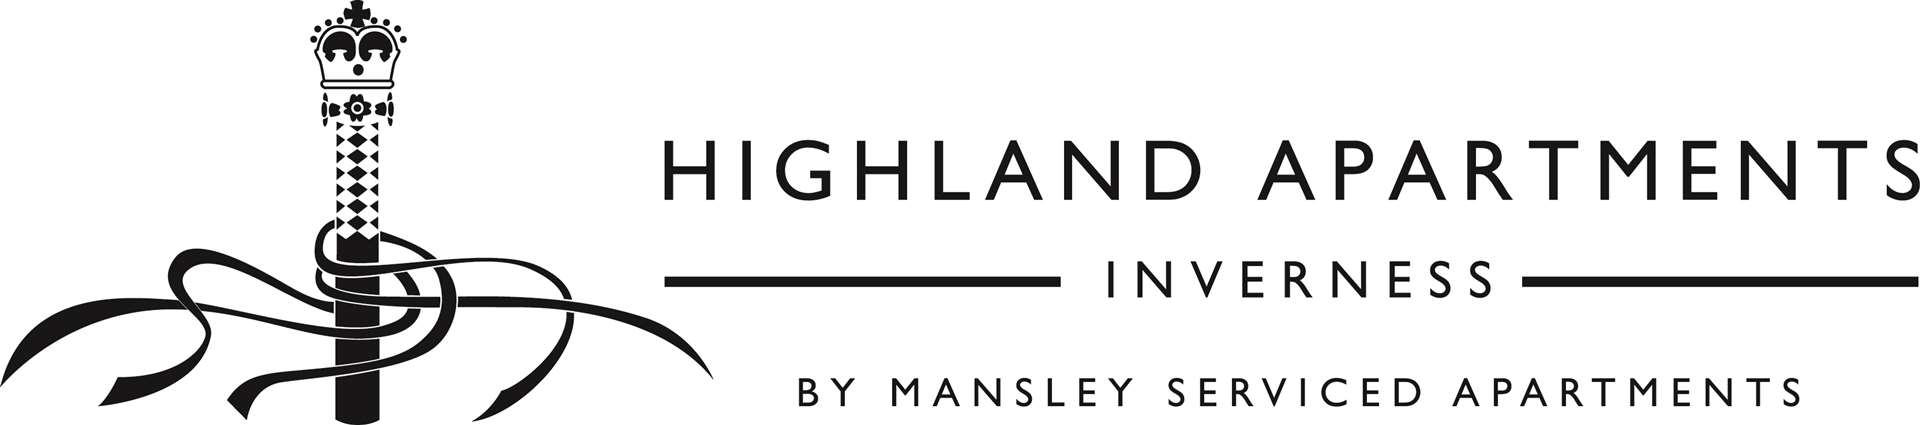 Highland Apartments, Inverness